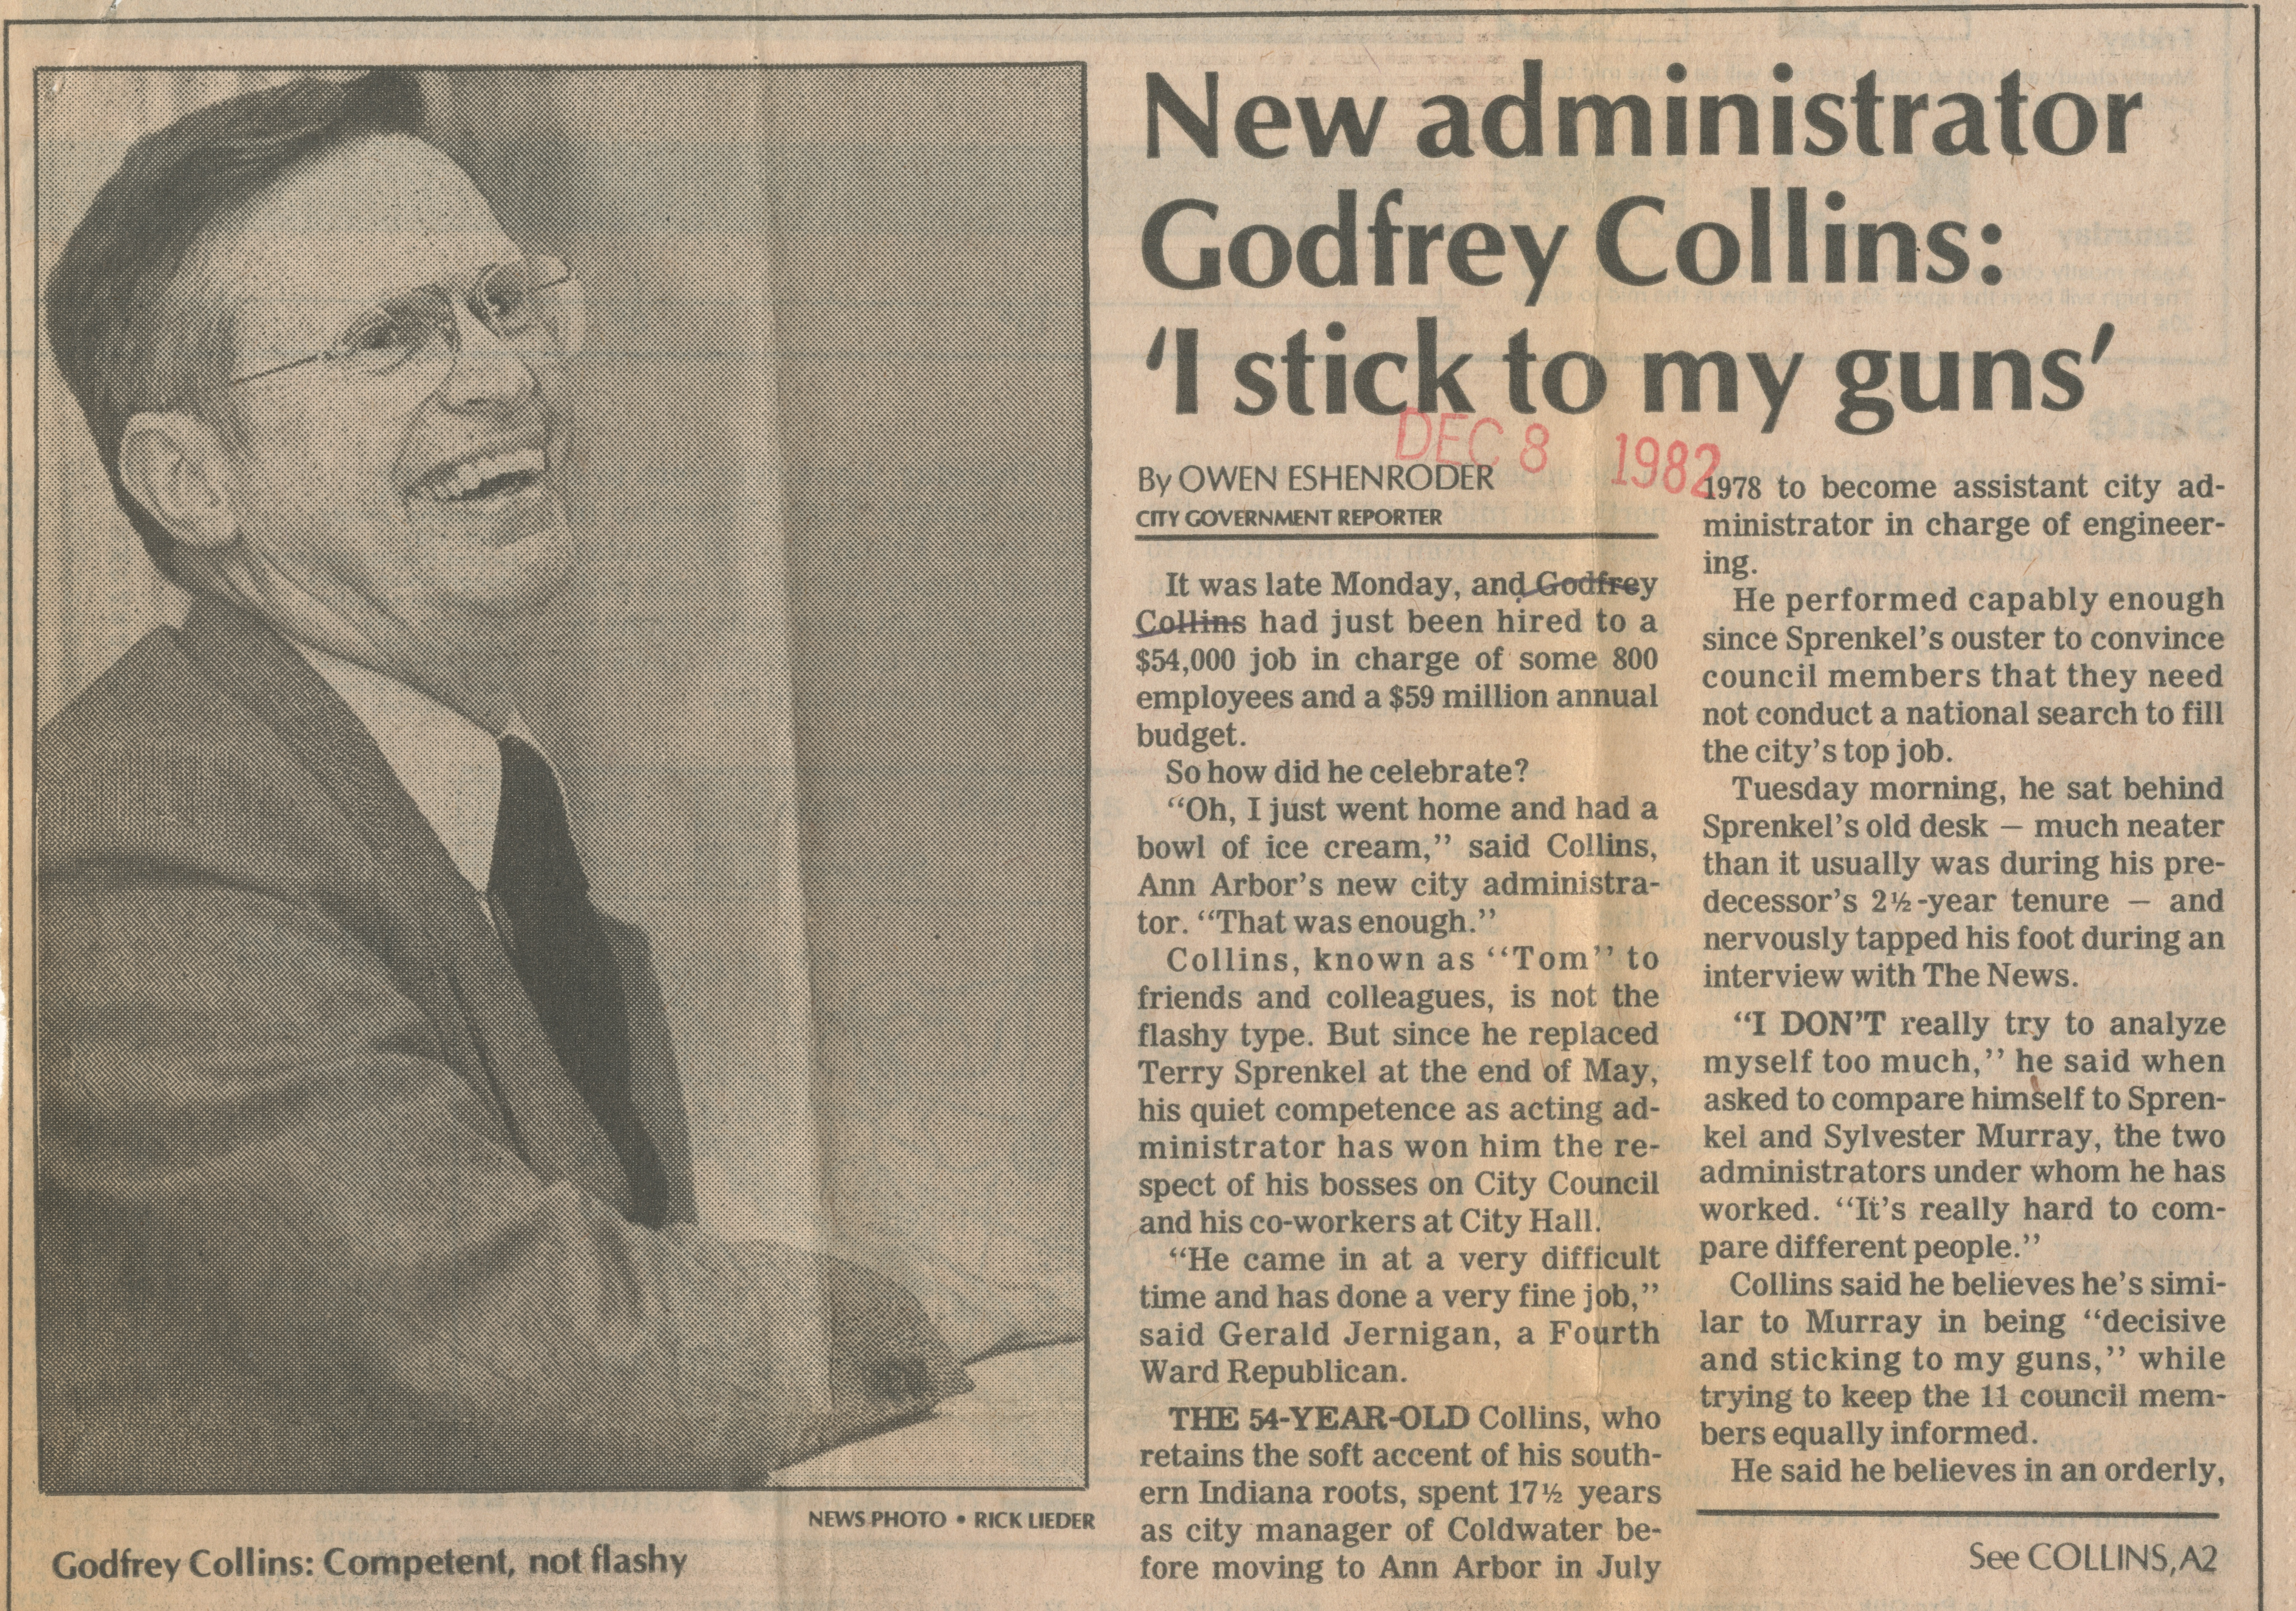 New administrator Godfrey Collins: 'I stick to my guns' image